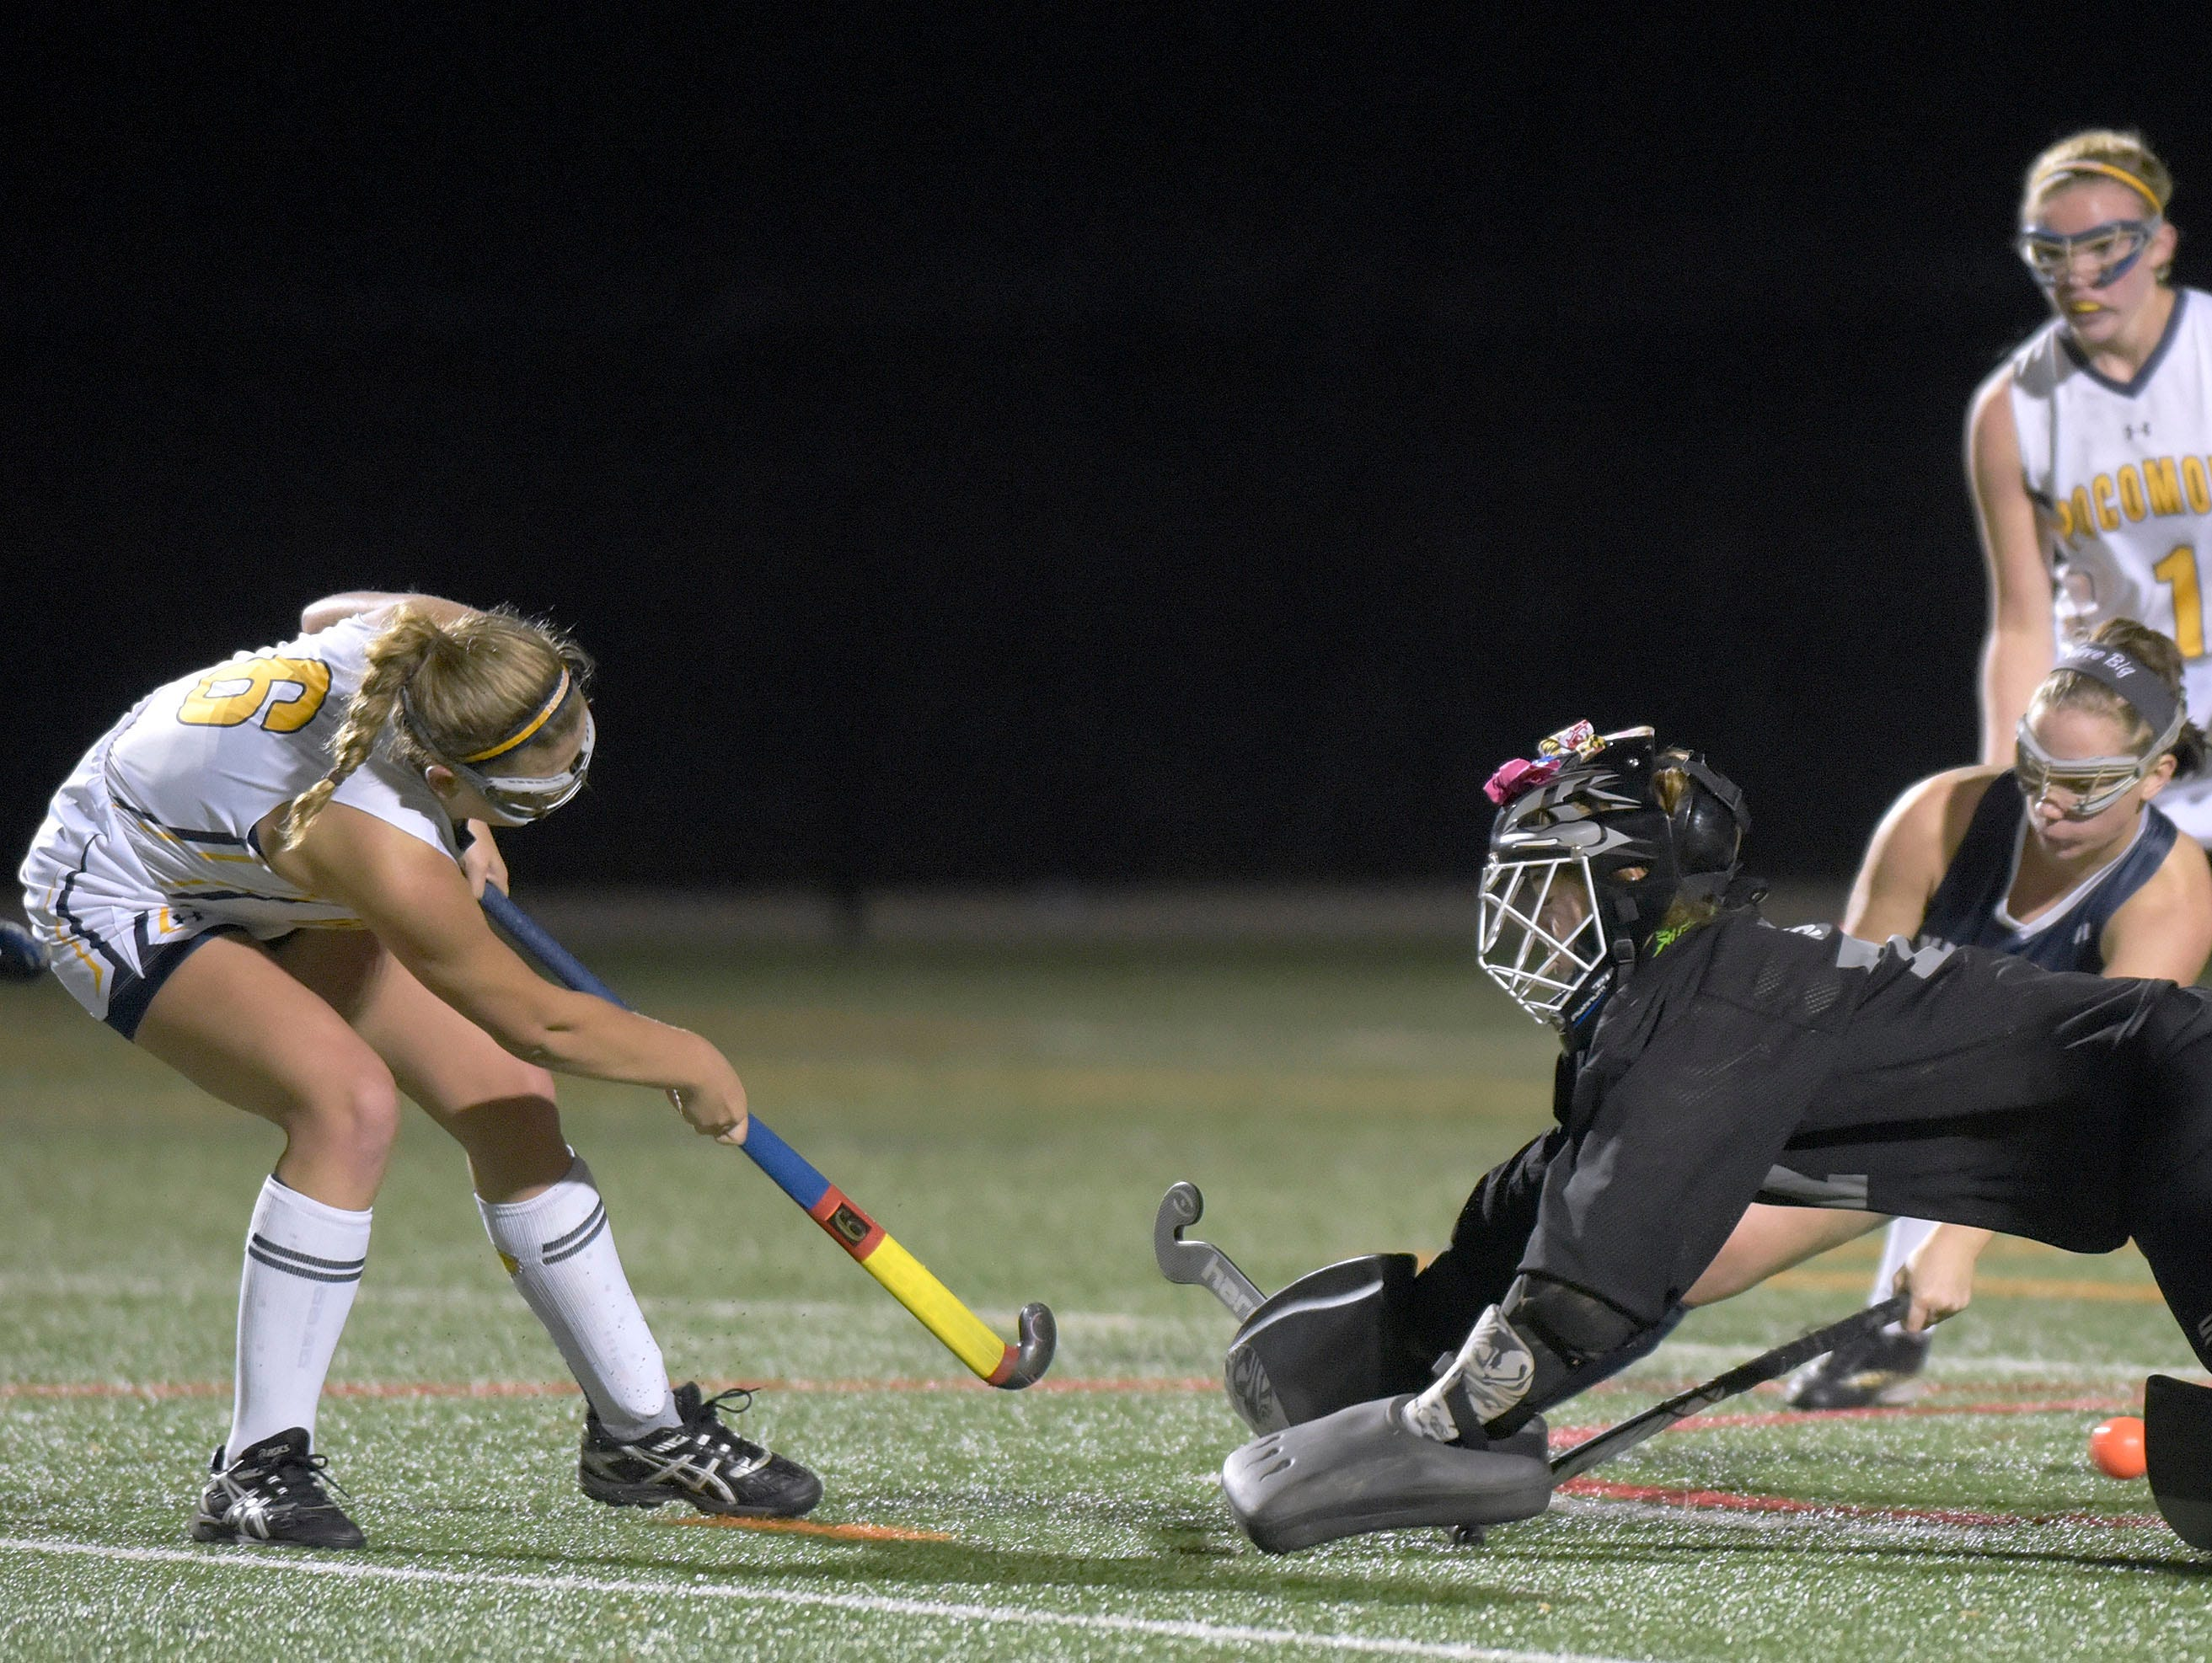 Pocomoke's Kasey Lee, left, scores against Manchester Valley goalkeeper Jacie Wood and defender Lydia Eichhorst, third from left, as Pocomoke's McKenzie Beauchamp, right, looks on in the second half of a Class 1A state semifinal field hockey game, Wednesday, Nov. 11, 2015 in Burtonsville.